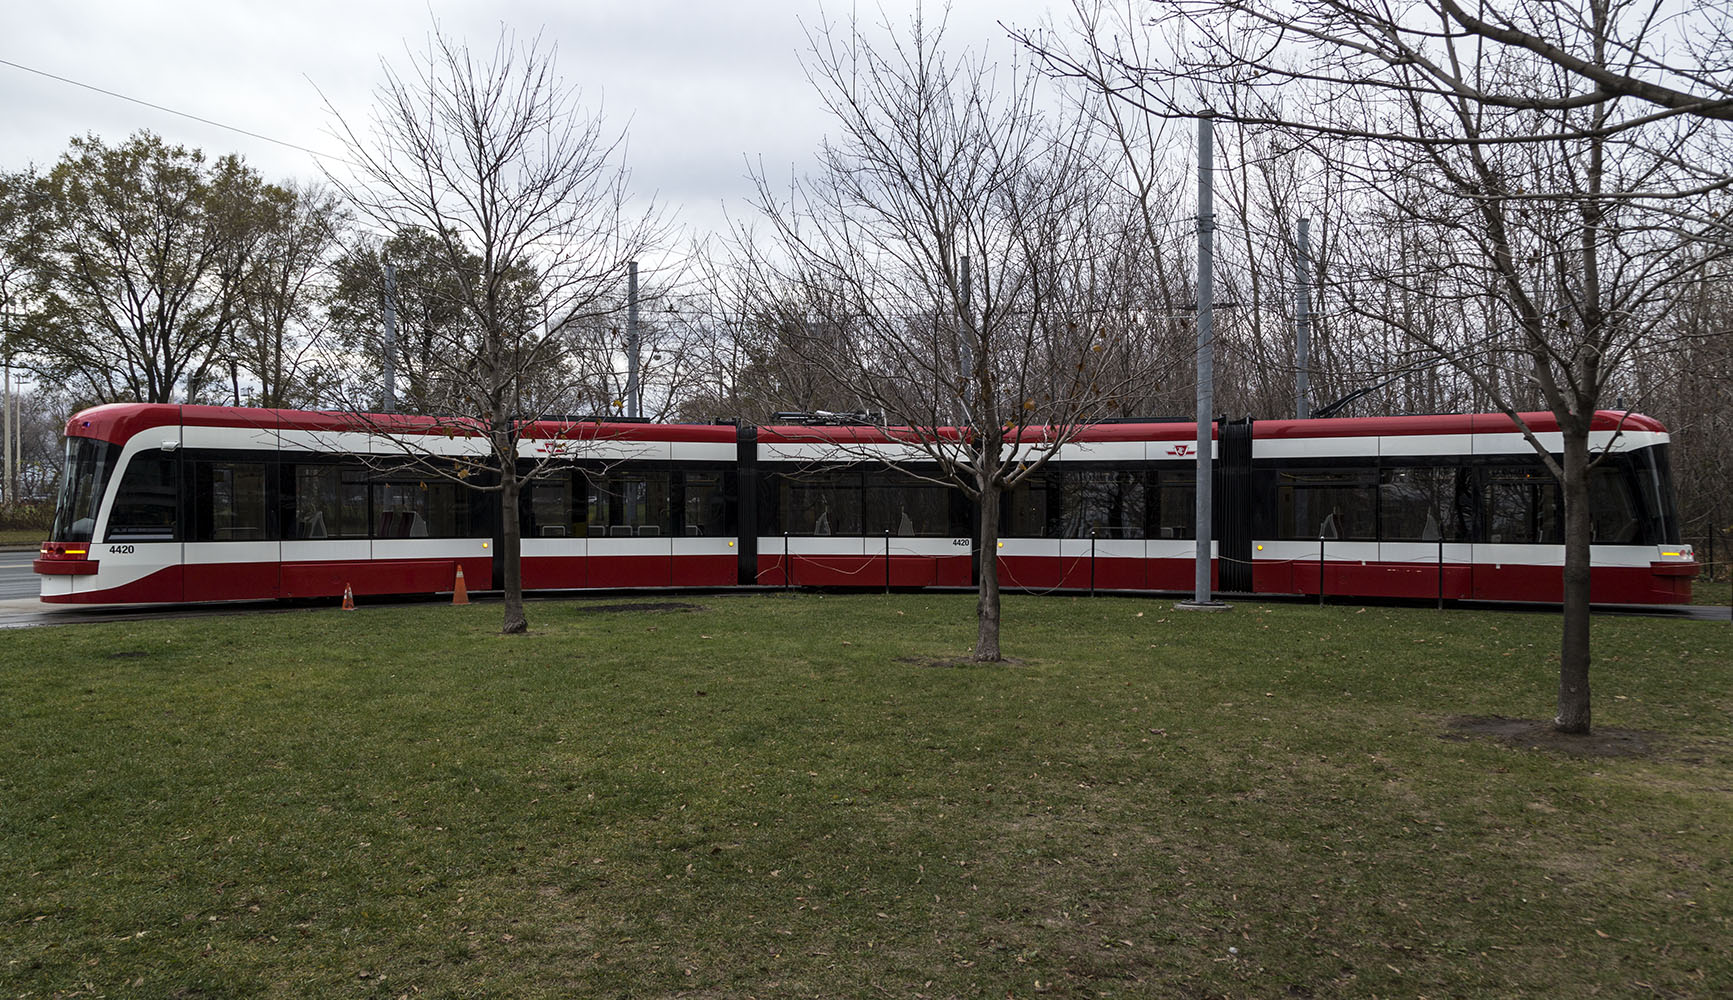 20161201. LRV in the landscape. A new TTC streetcar turns around